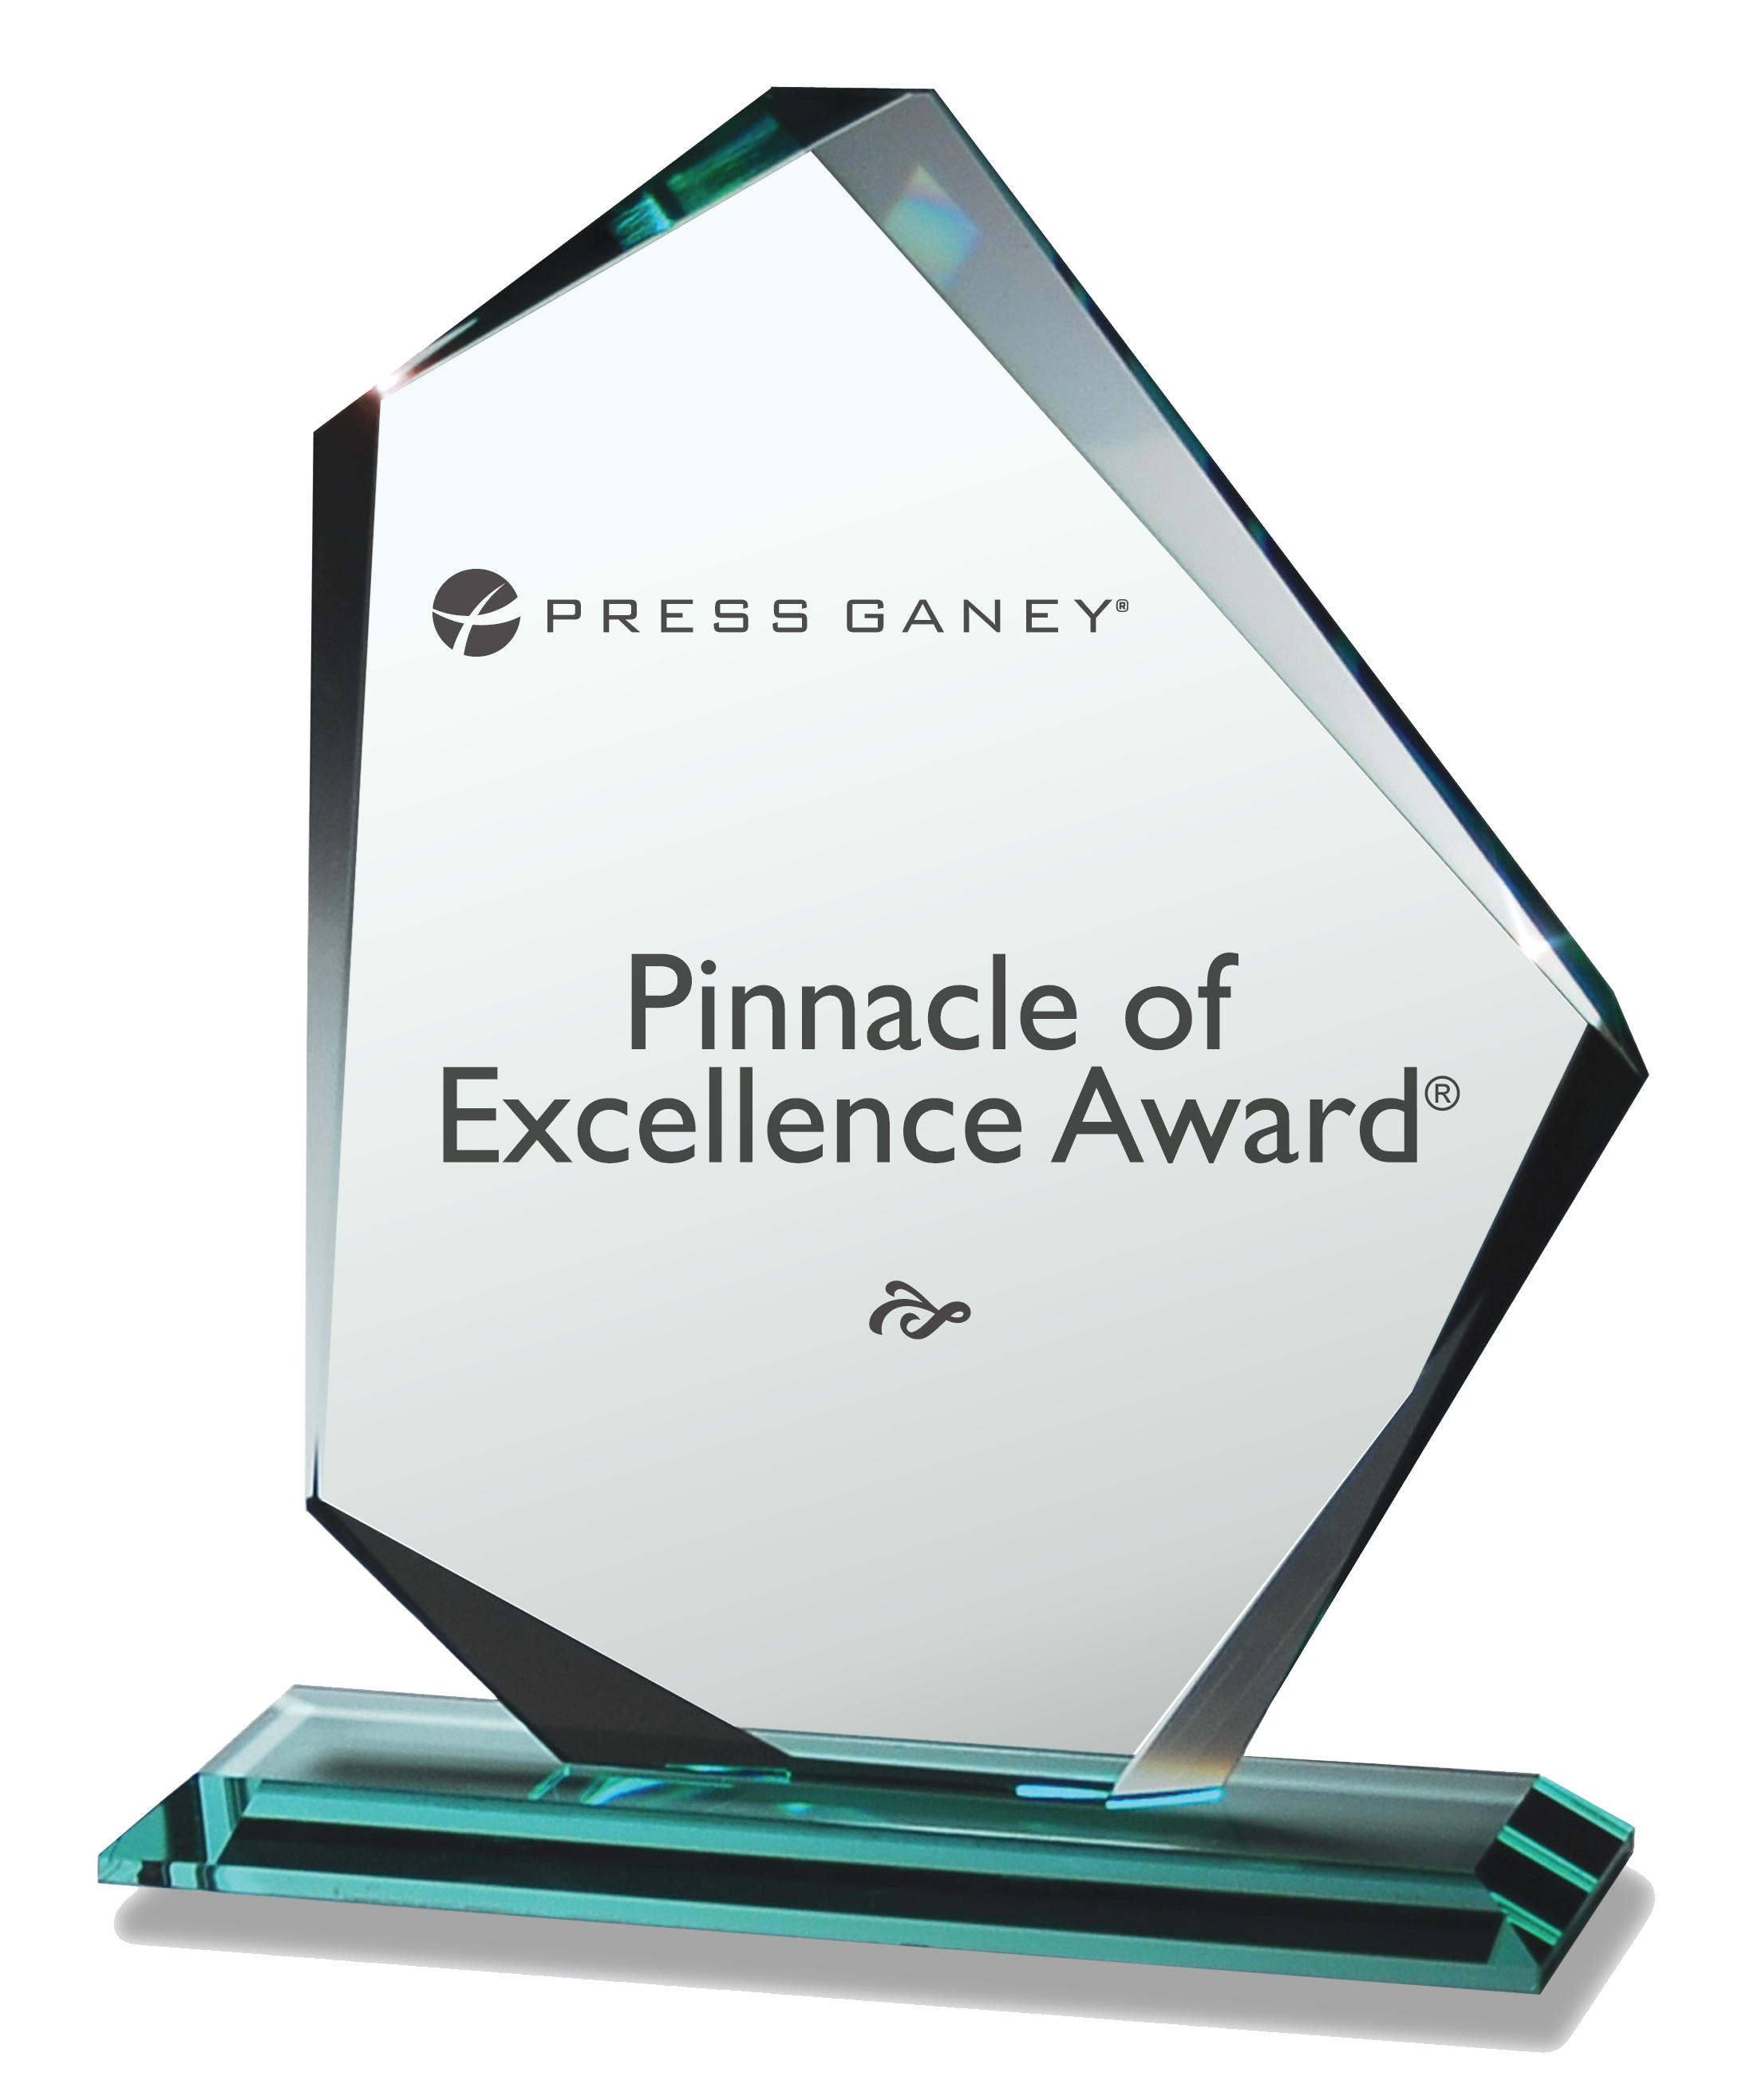 PG Pinnacle Award